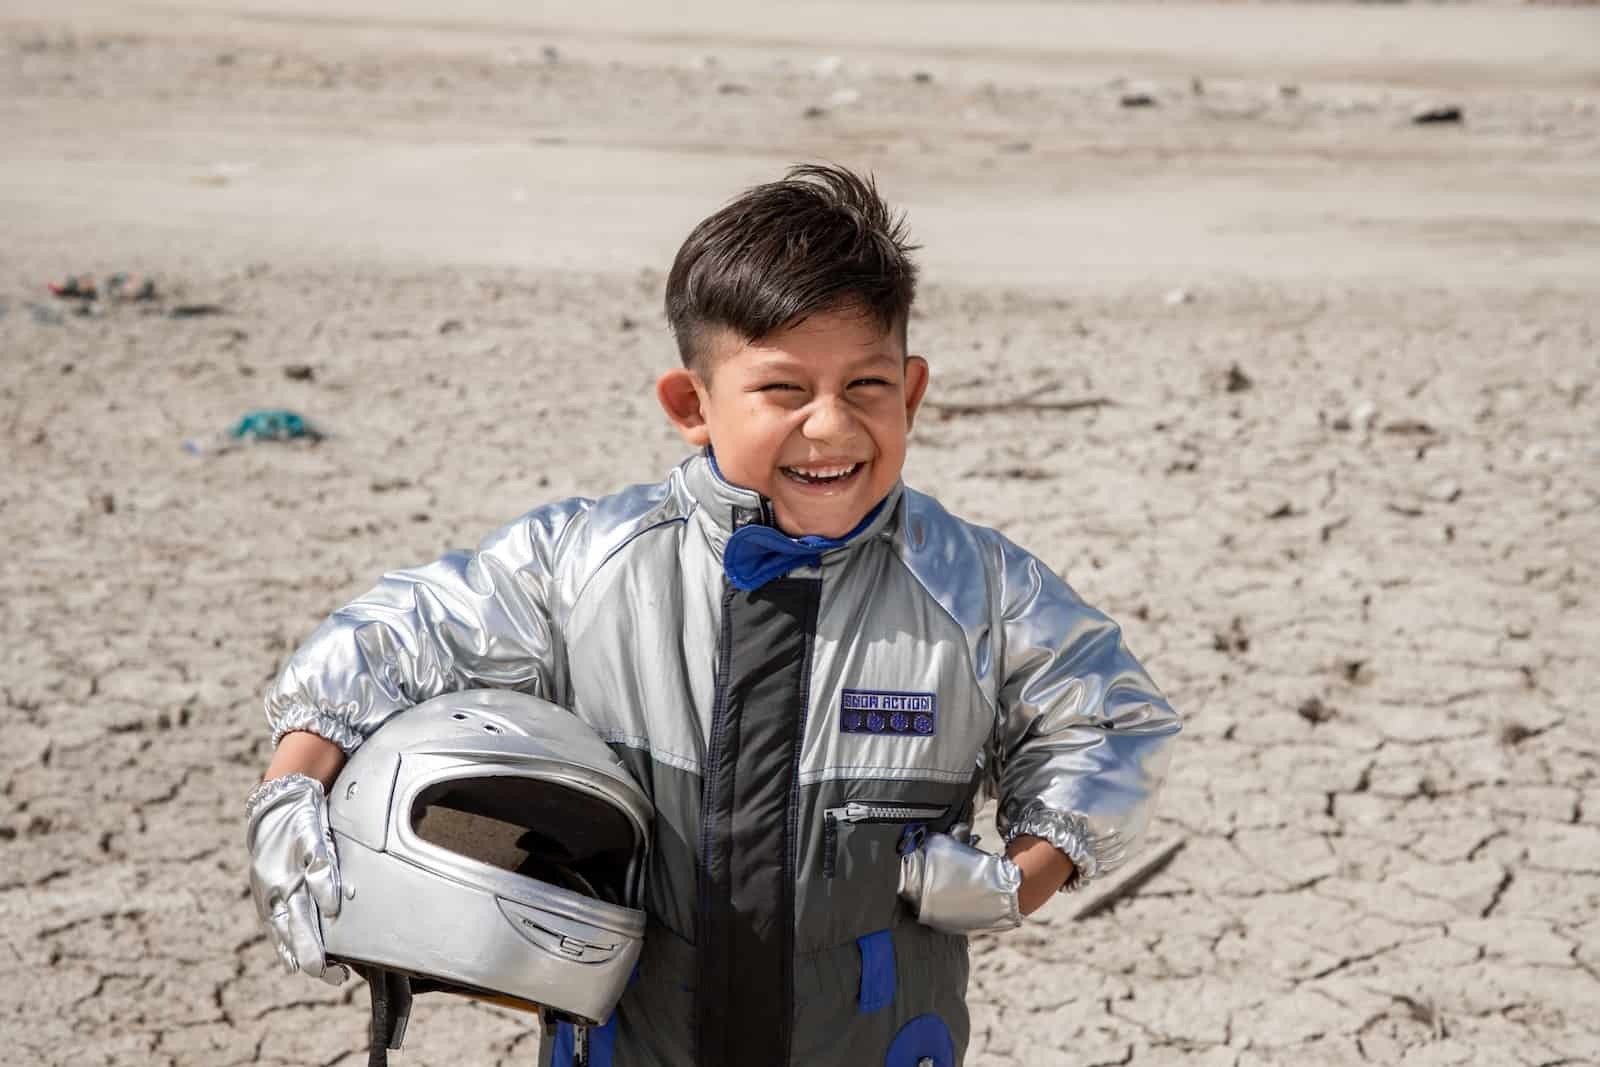 A boy wearing a silver suit and holding a silver helmet stands with one hand on his hip, smiling, in front of a dry, parched dirt background.